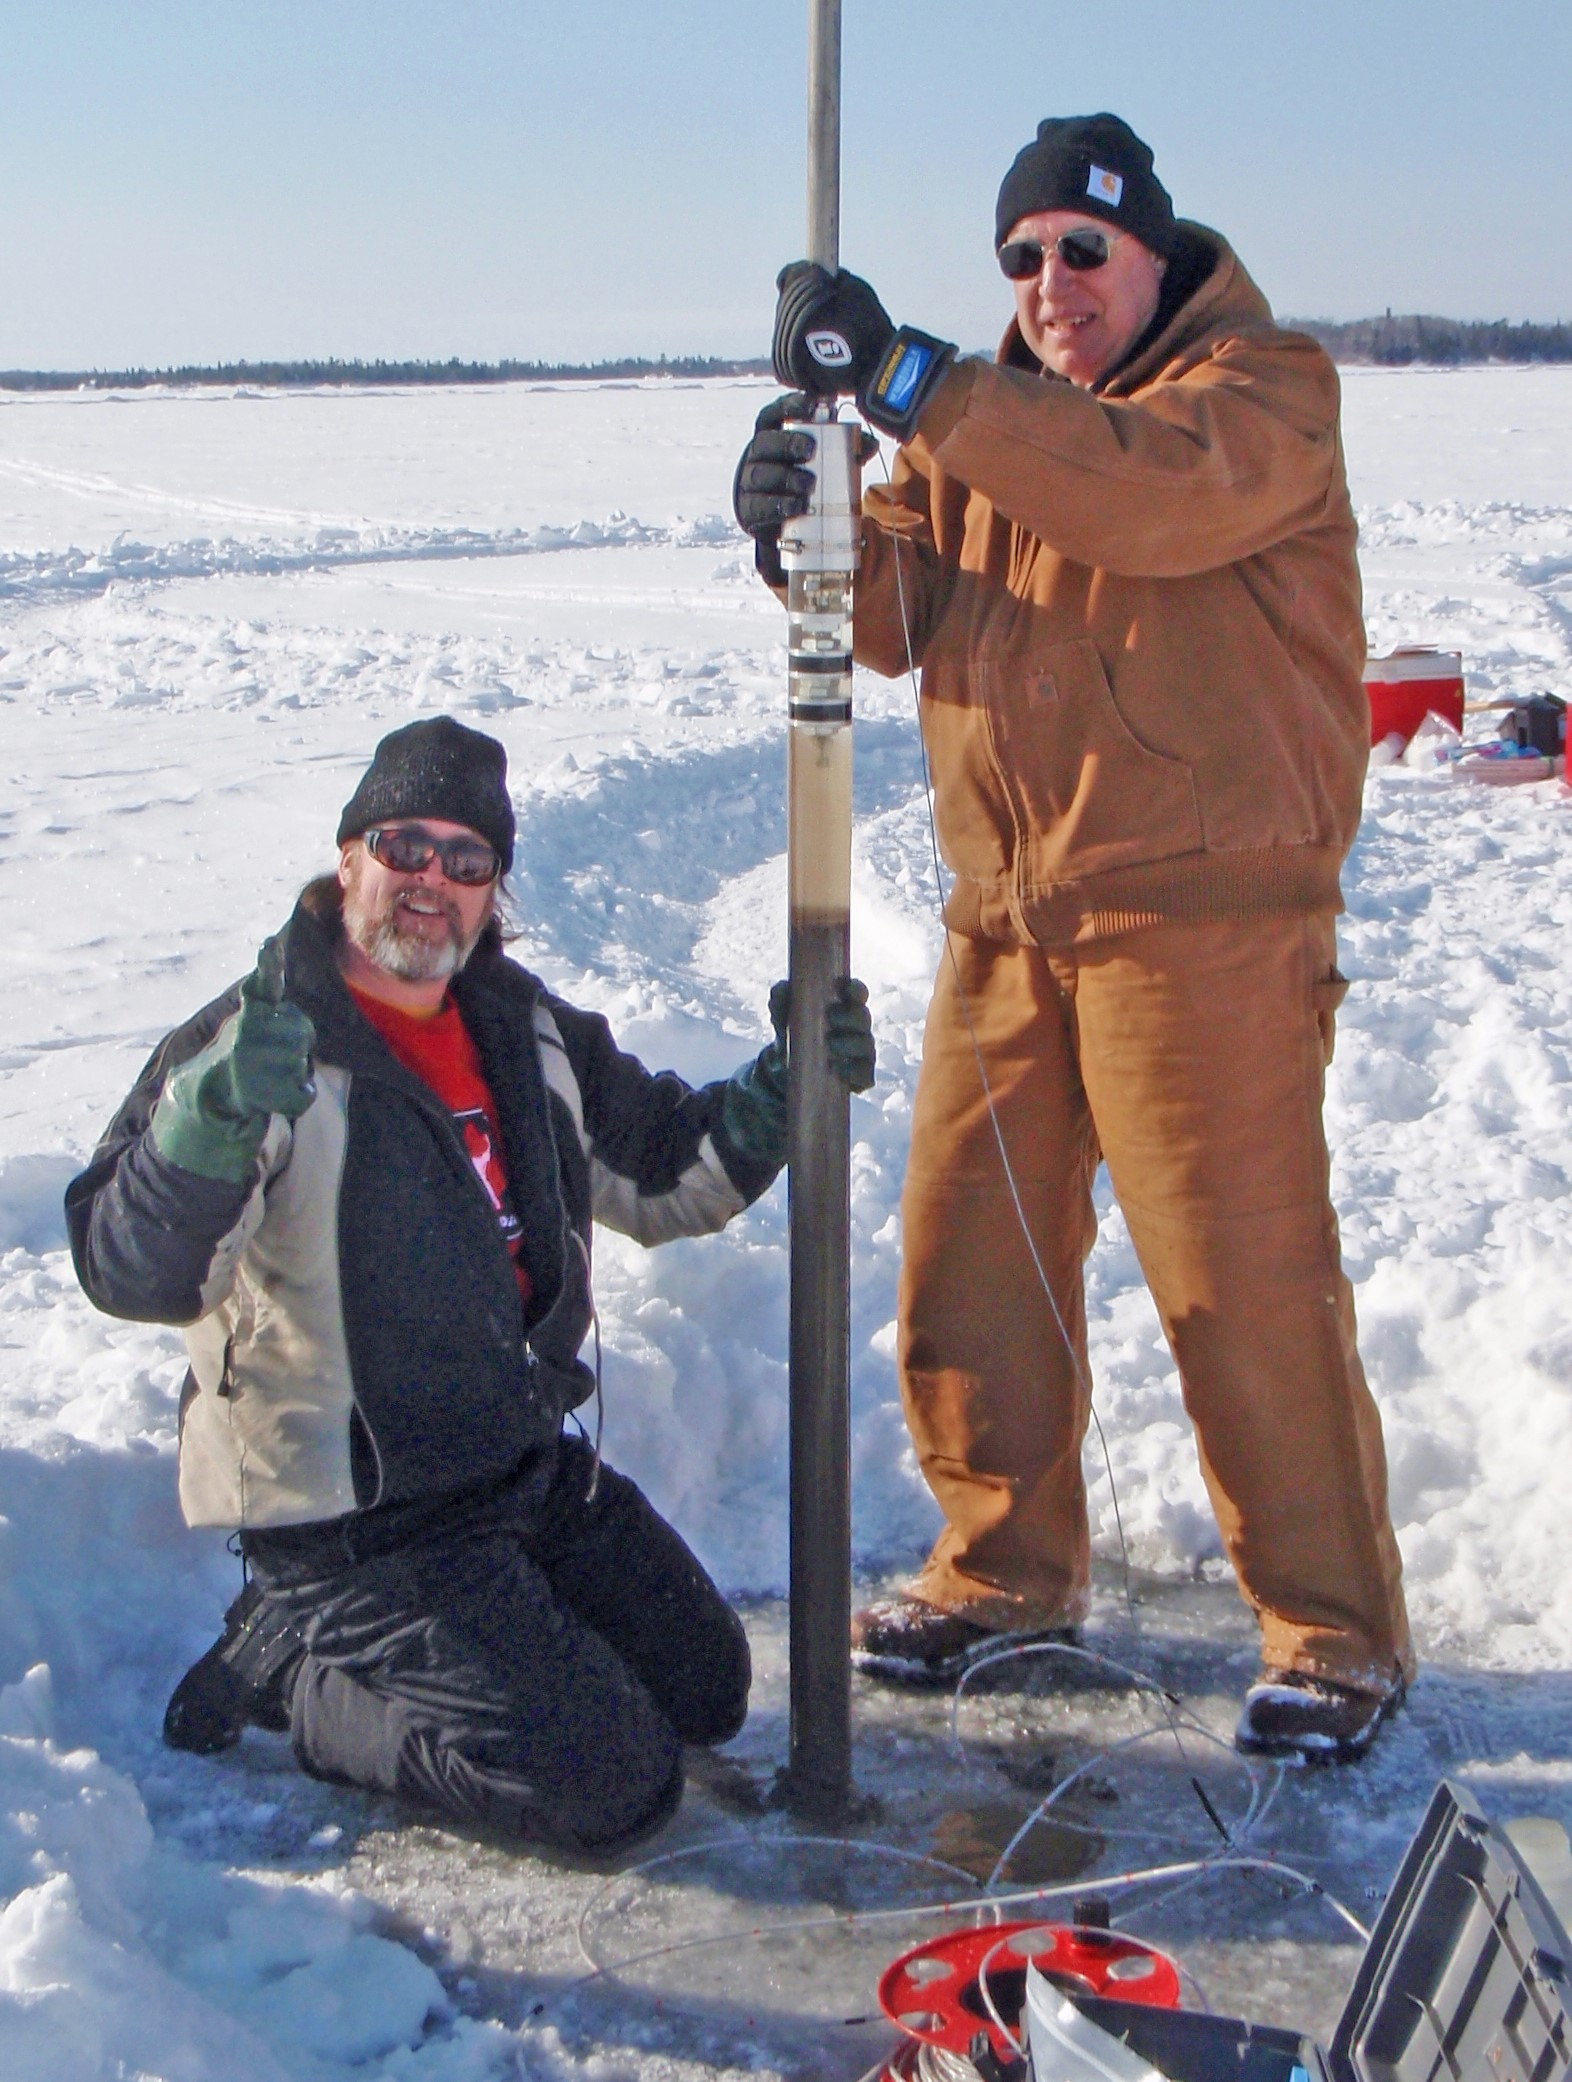 At left, Euan Reavie of the University of Minnesota. At right, Nolan Baratono, member of the Rainy-Lake of the Woods board and Forum Organizing Committee, with a sediment core taken from the bottom of the Big Traverse Bay for a historical nutrient loading study. Credit: Shawn Schottler, Science Museum of Minnesota